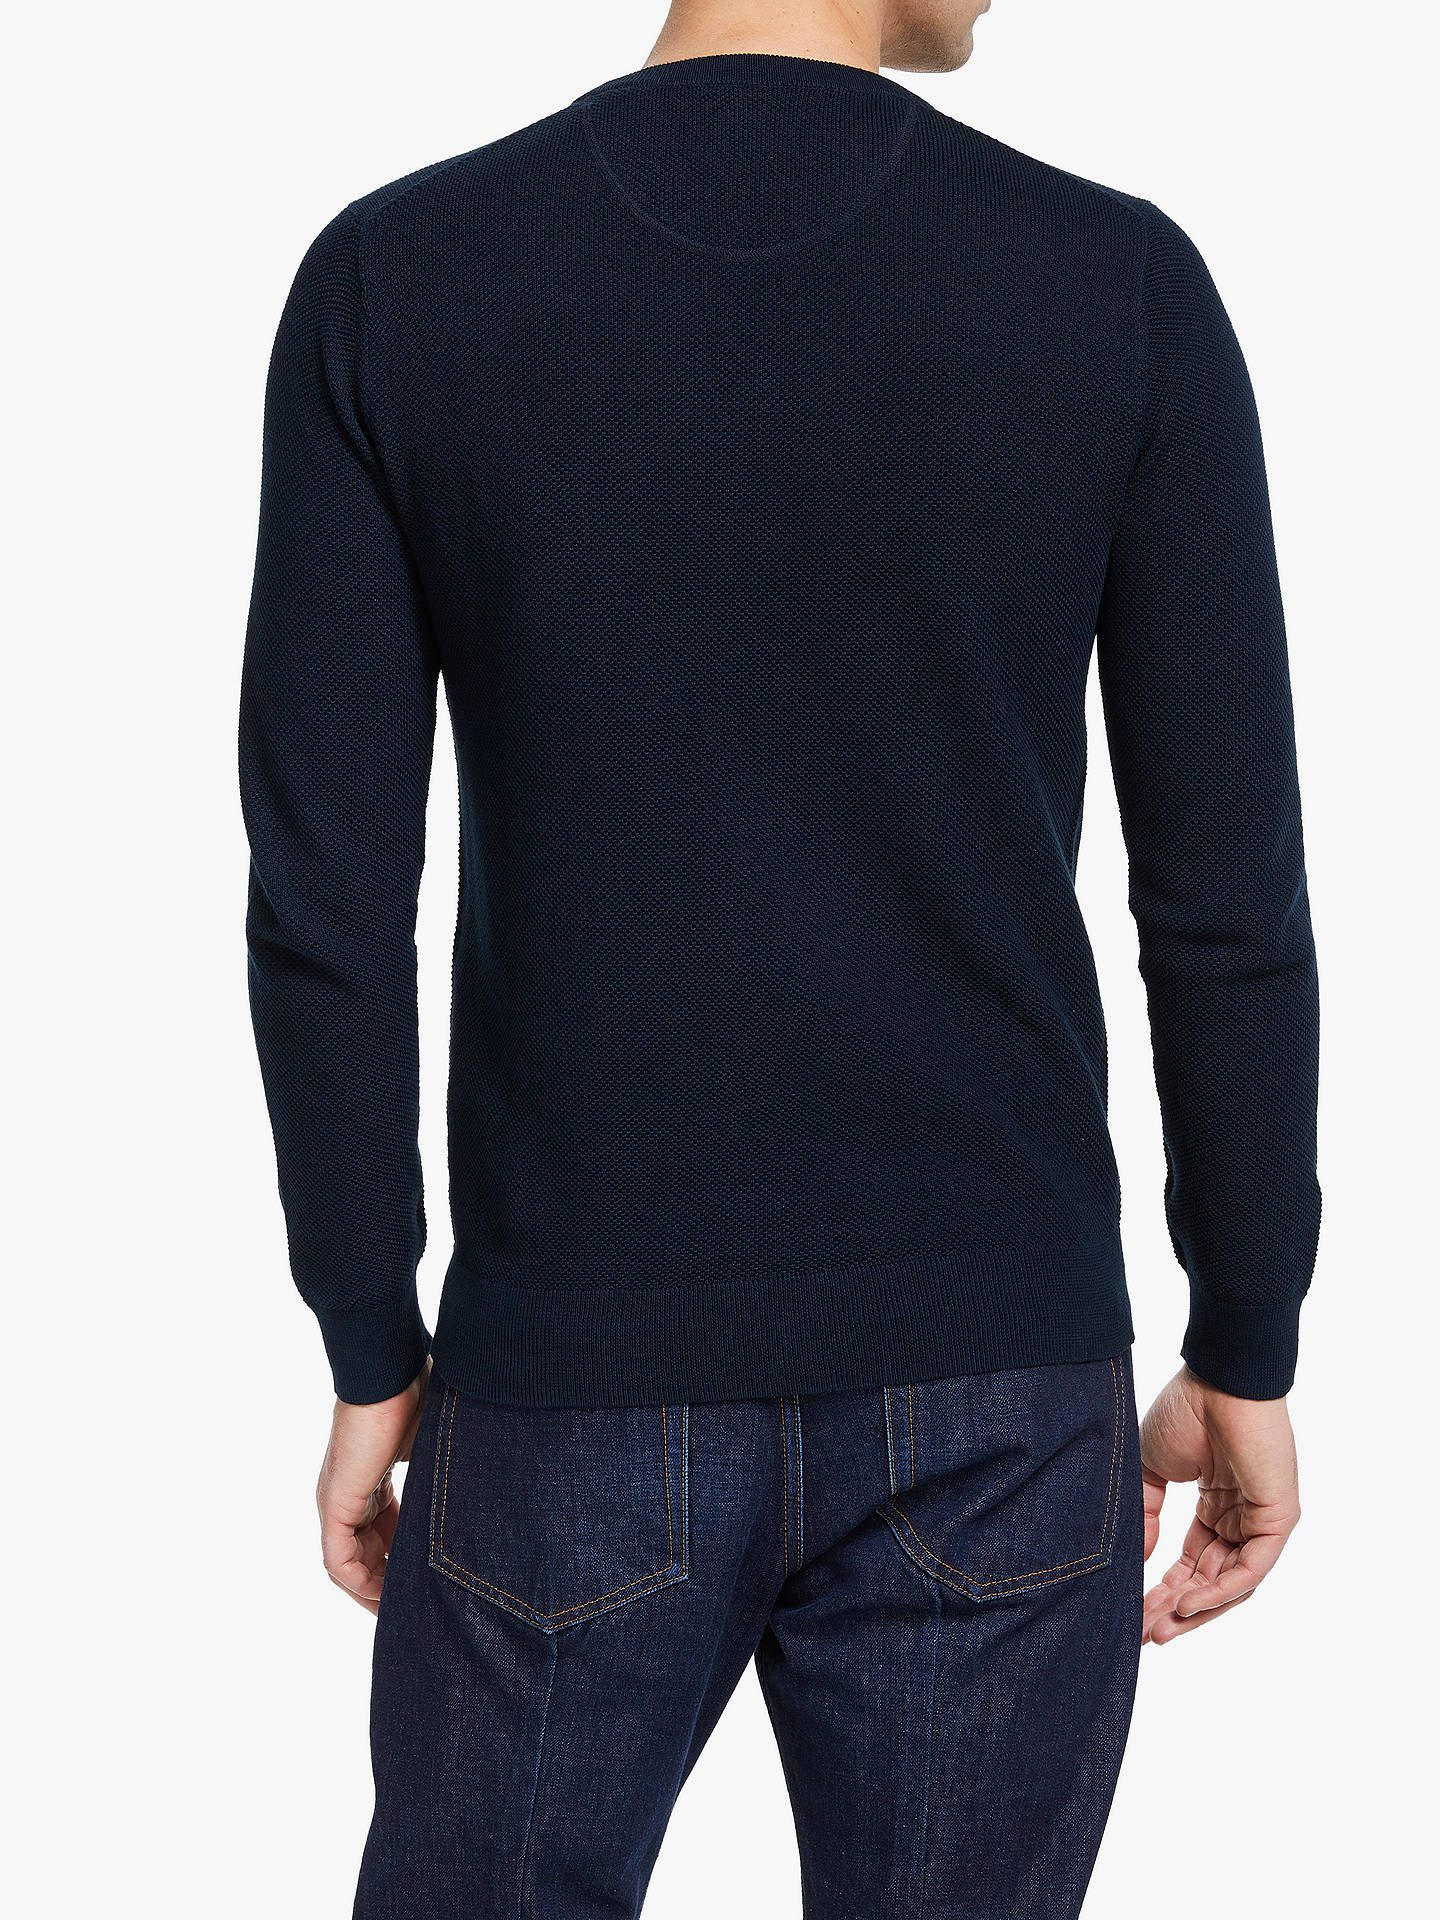 BuyGANT Cotton Pique Crew Neck Jumper, Navy, S Online at johnlewis.com